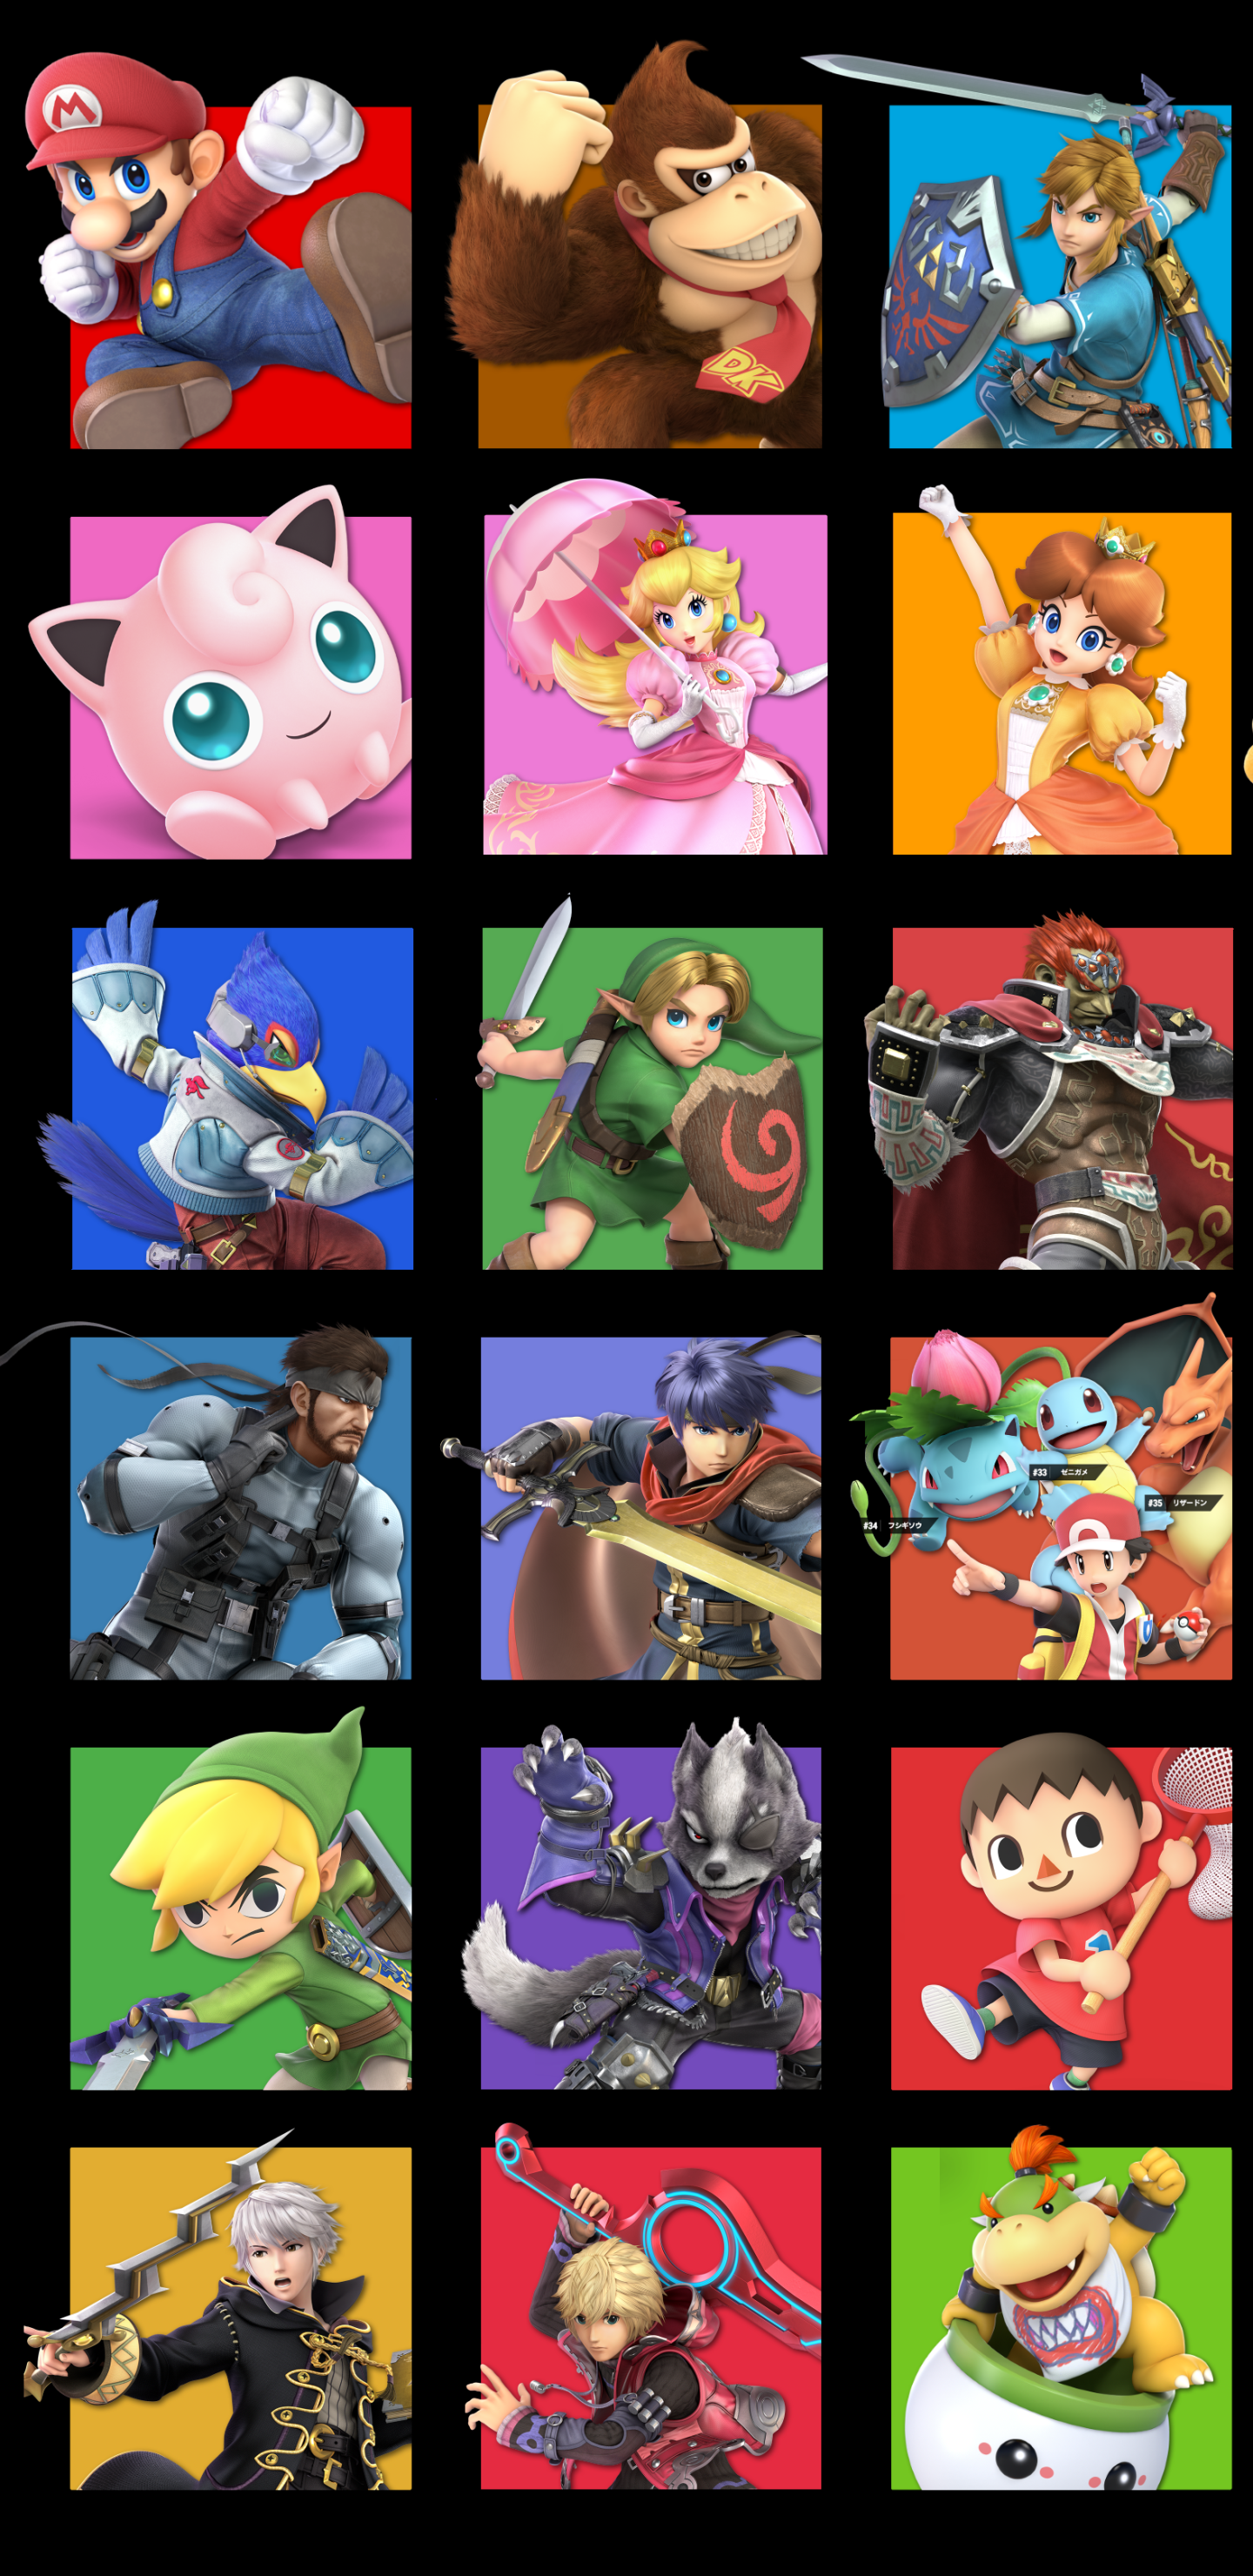 Video Game Super Smash Bros Ultimate 1440x2960 Wallpaper Id